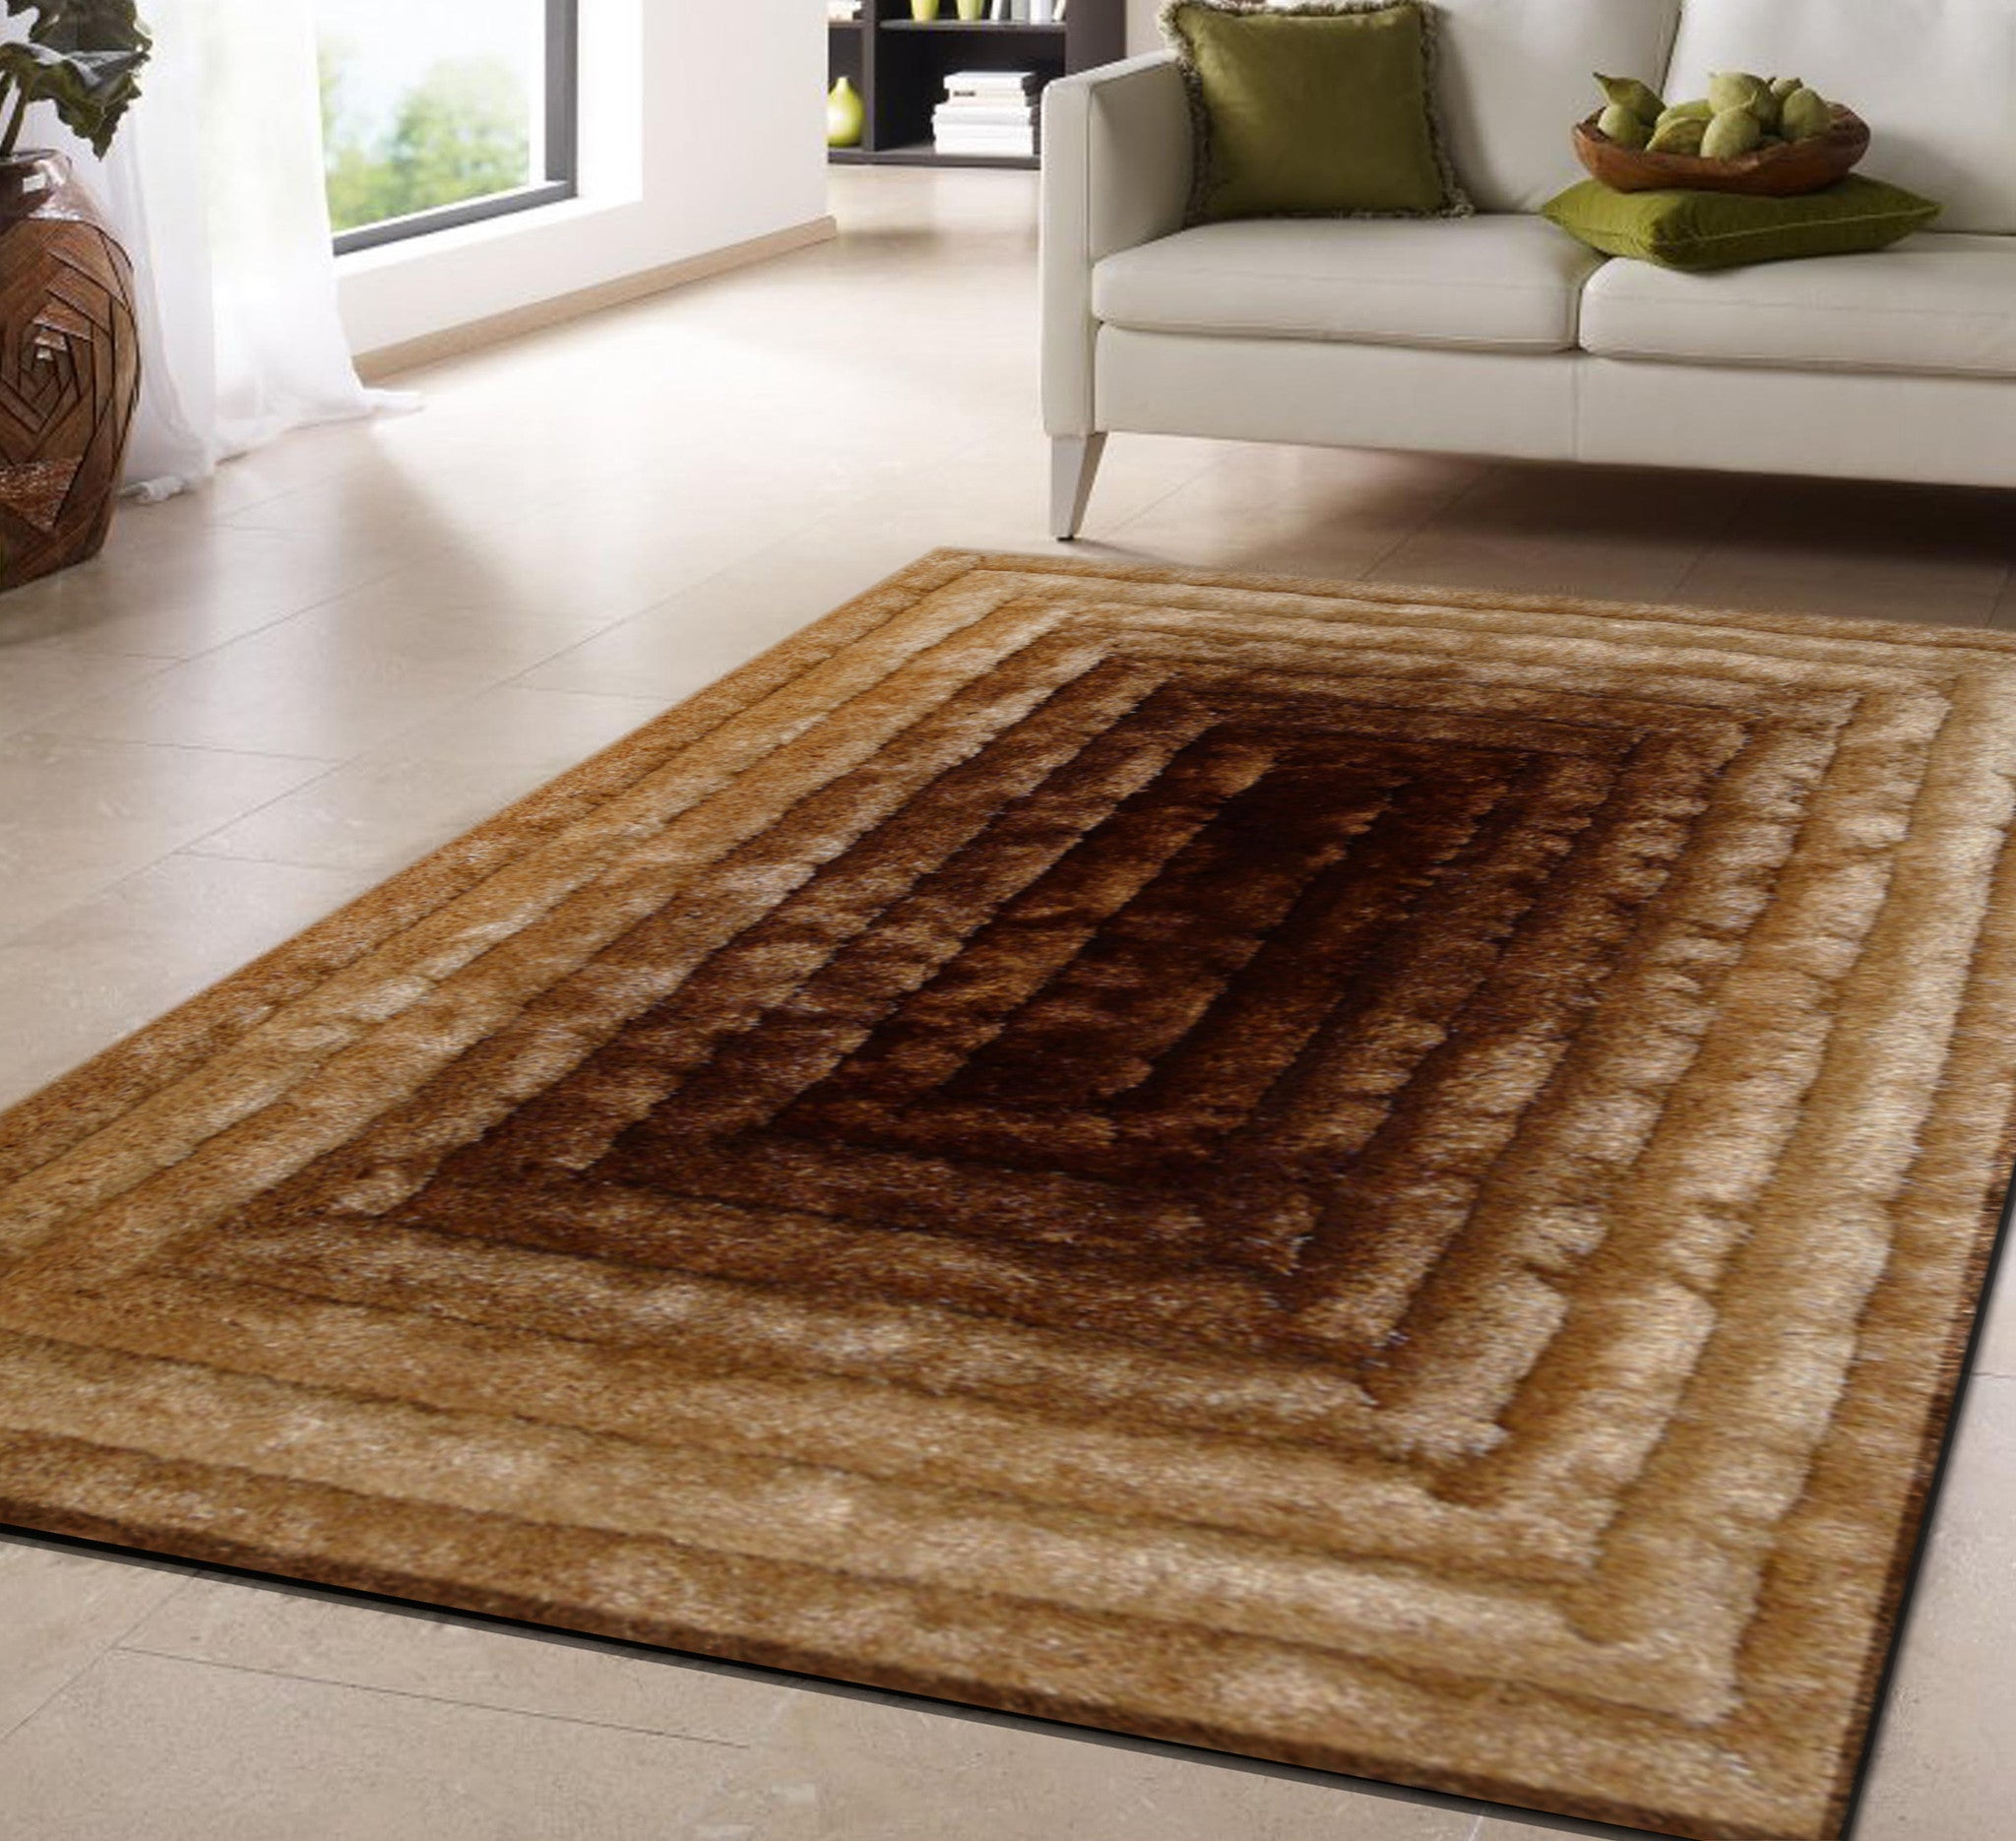 Handmade Vibrant Gold Brown 3 Dimensional Shag Area Rug